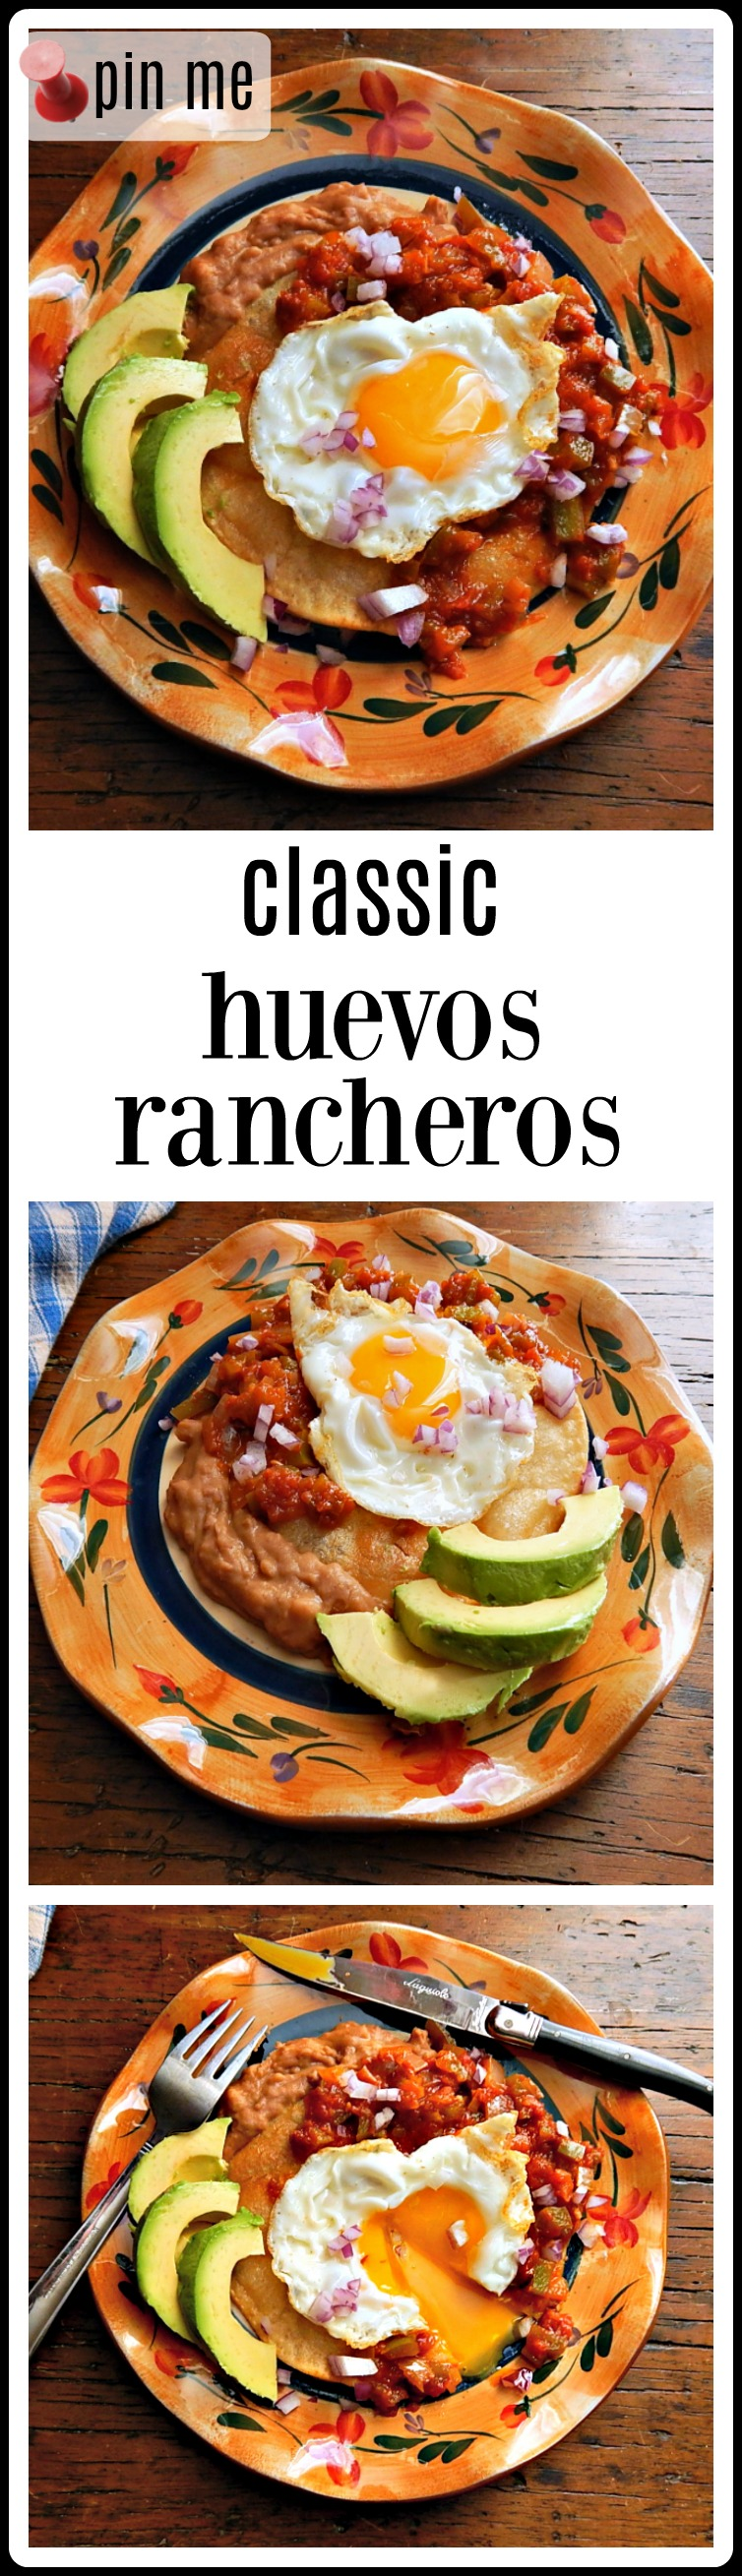 Classic Huevos Rancheros: a sunnyside up egg nestled in Ranchero Sauce served atop a crispy tortilla slathered with refried beans. There are layers of flavor and textures to keep your mouth happy, happy, happy! #HuevosRancheros #CincodeMayoRecipe